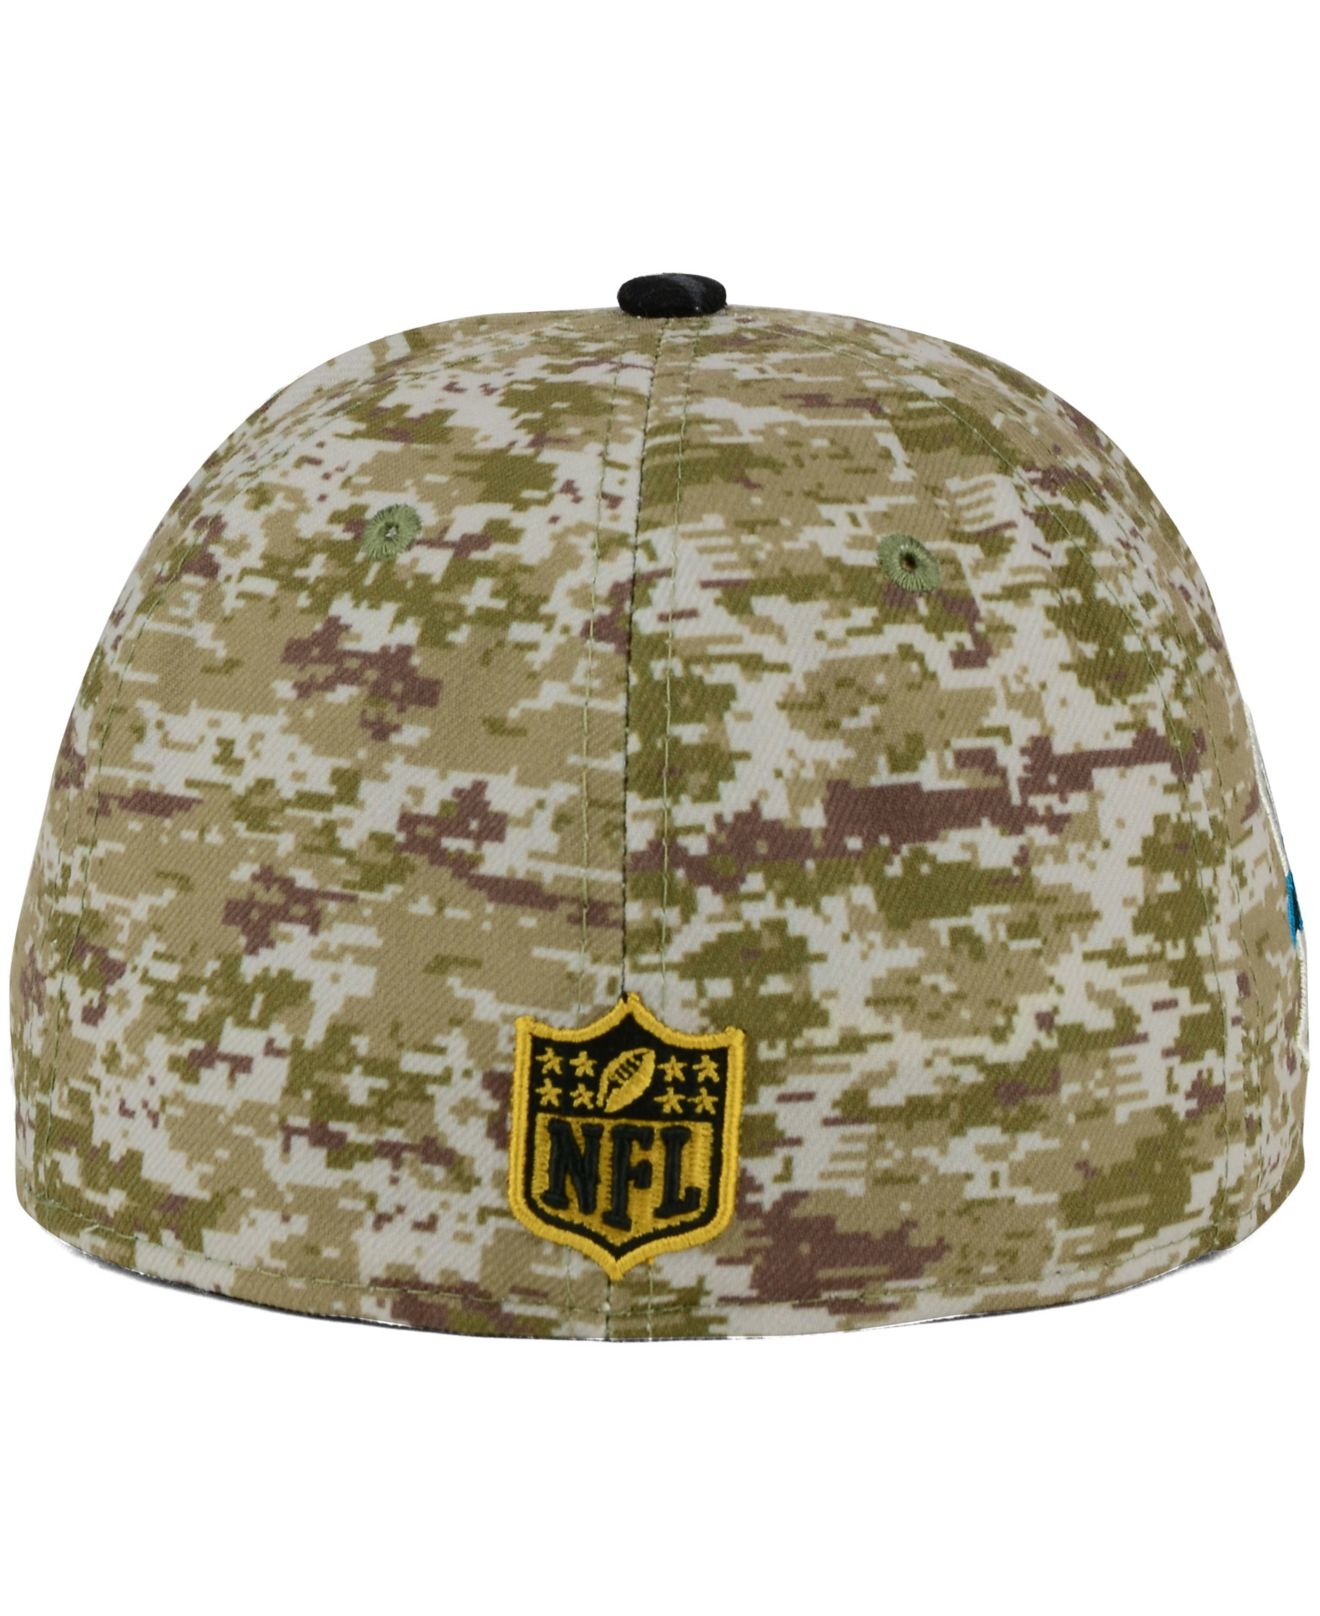 247d2c195 Lyst - KTZ Carolina Panthers Salute To Service 59fifty Cap in Green ...